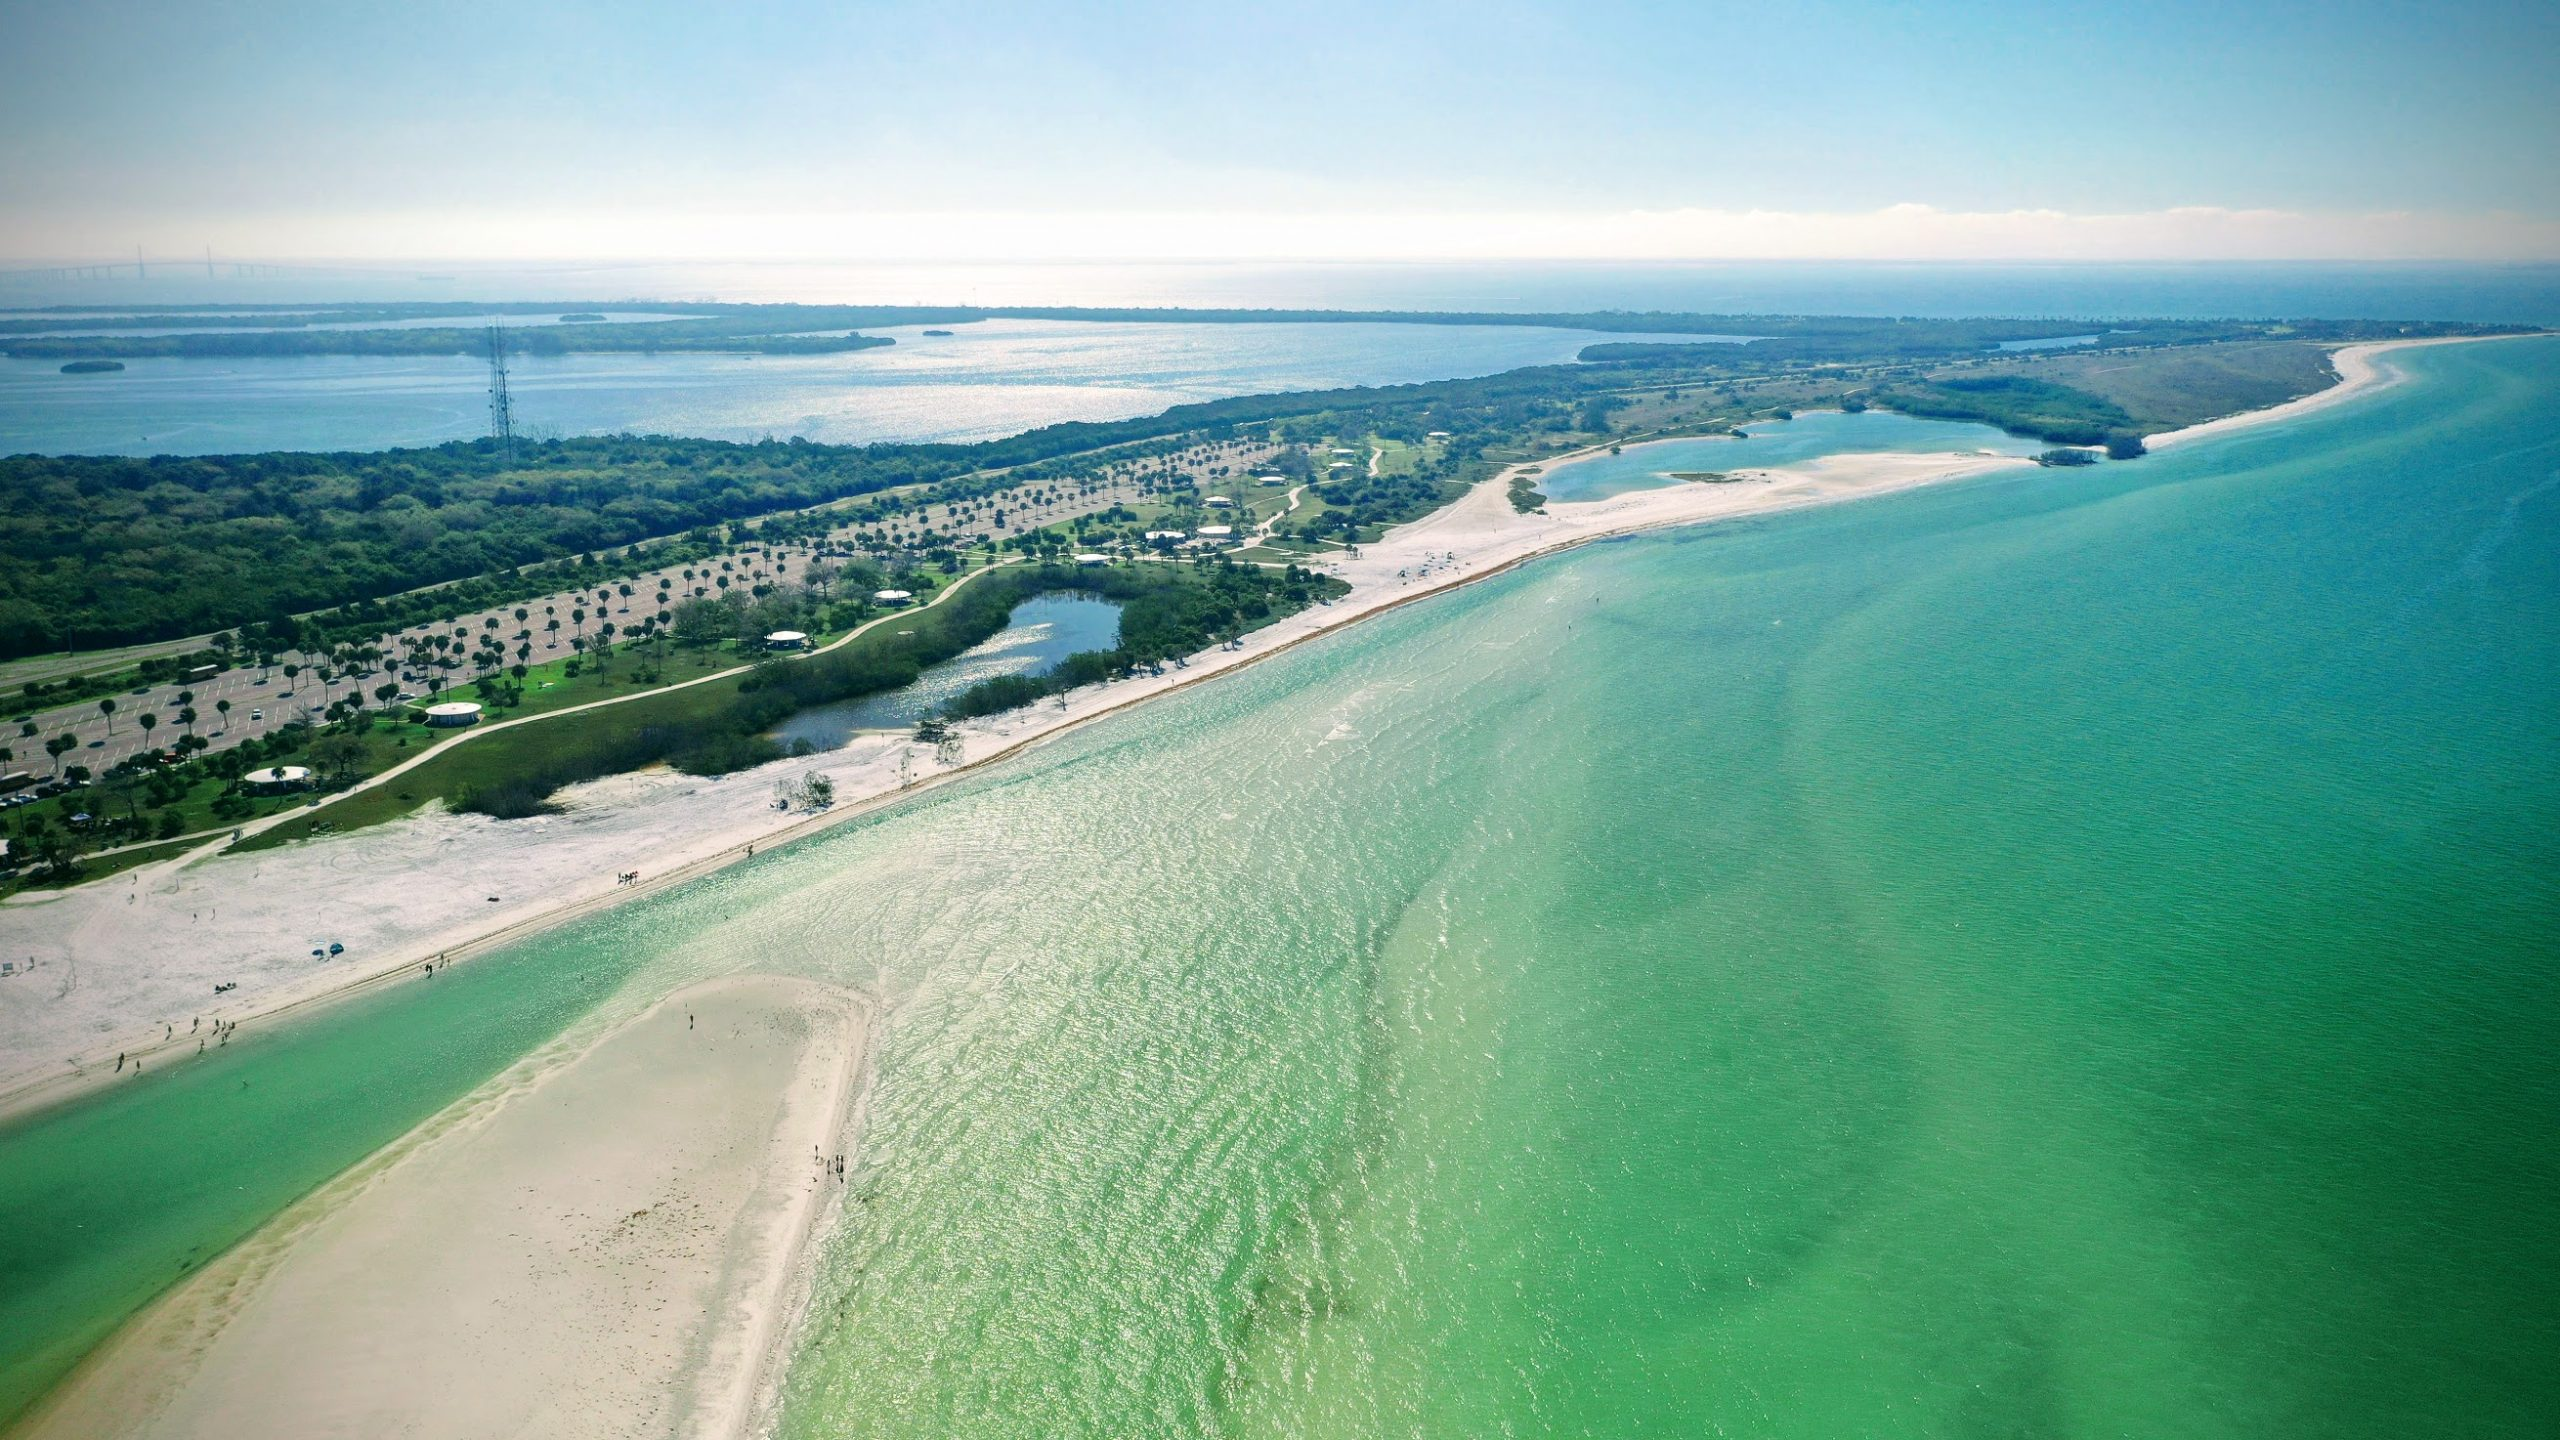 The Best Sand Bars, Islands, and Keys to Visit in and Around the Tampa Bay